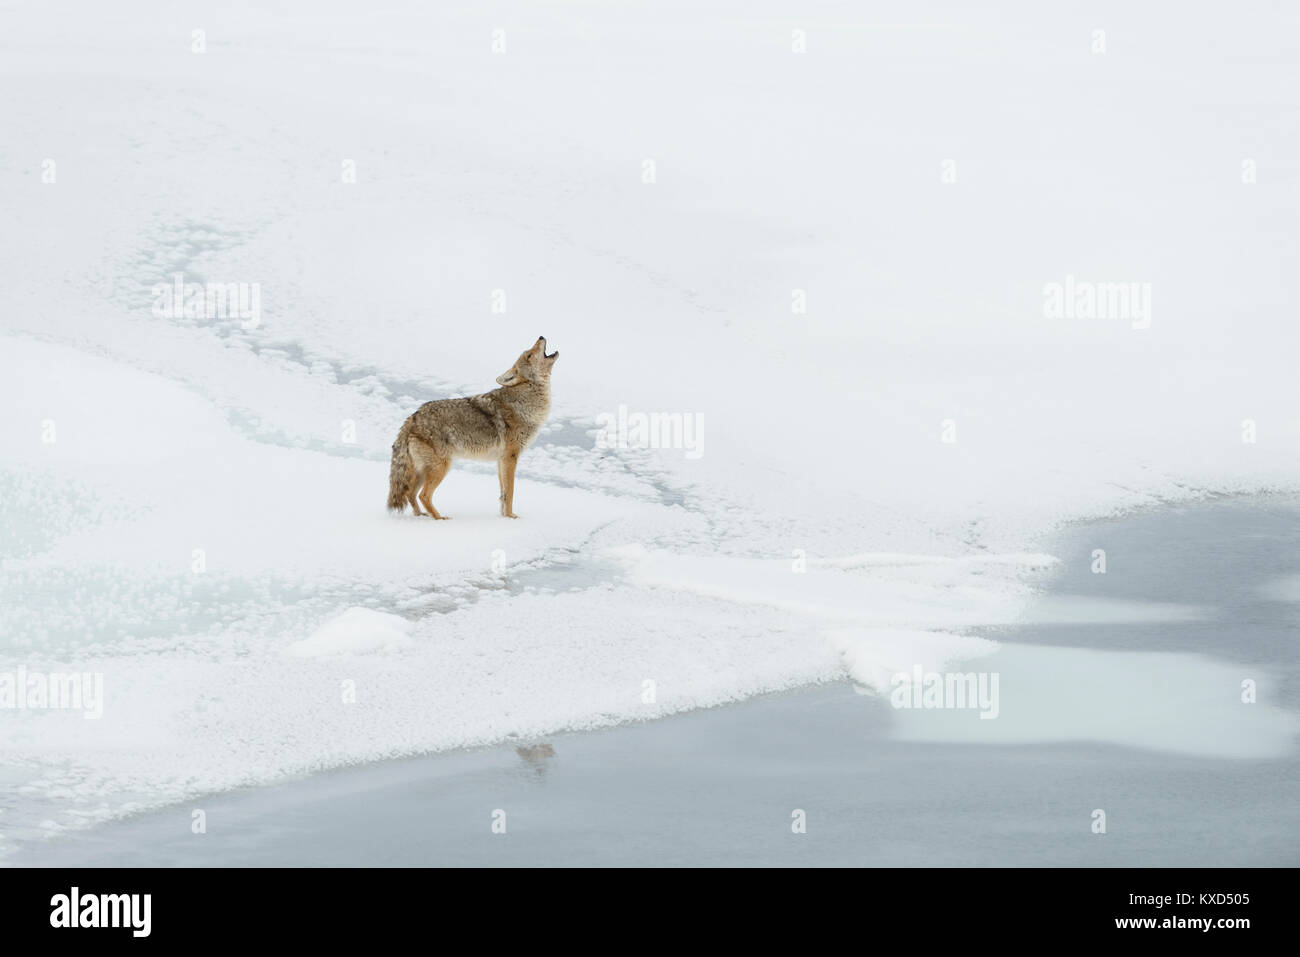 A coyote (Canis latrans) howls during winter, North America - Stock Image